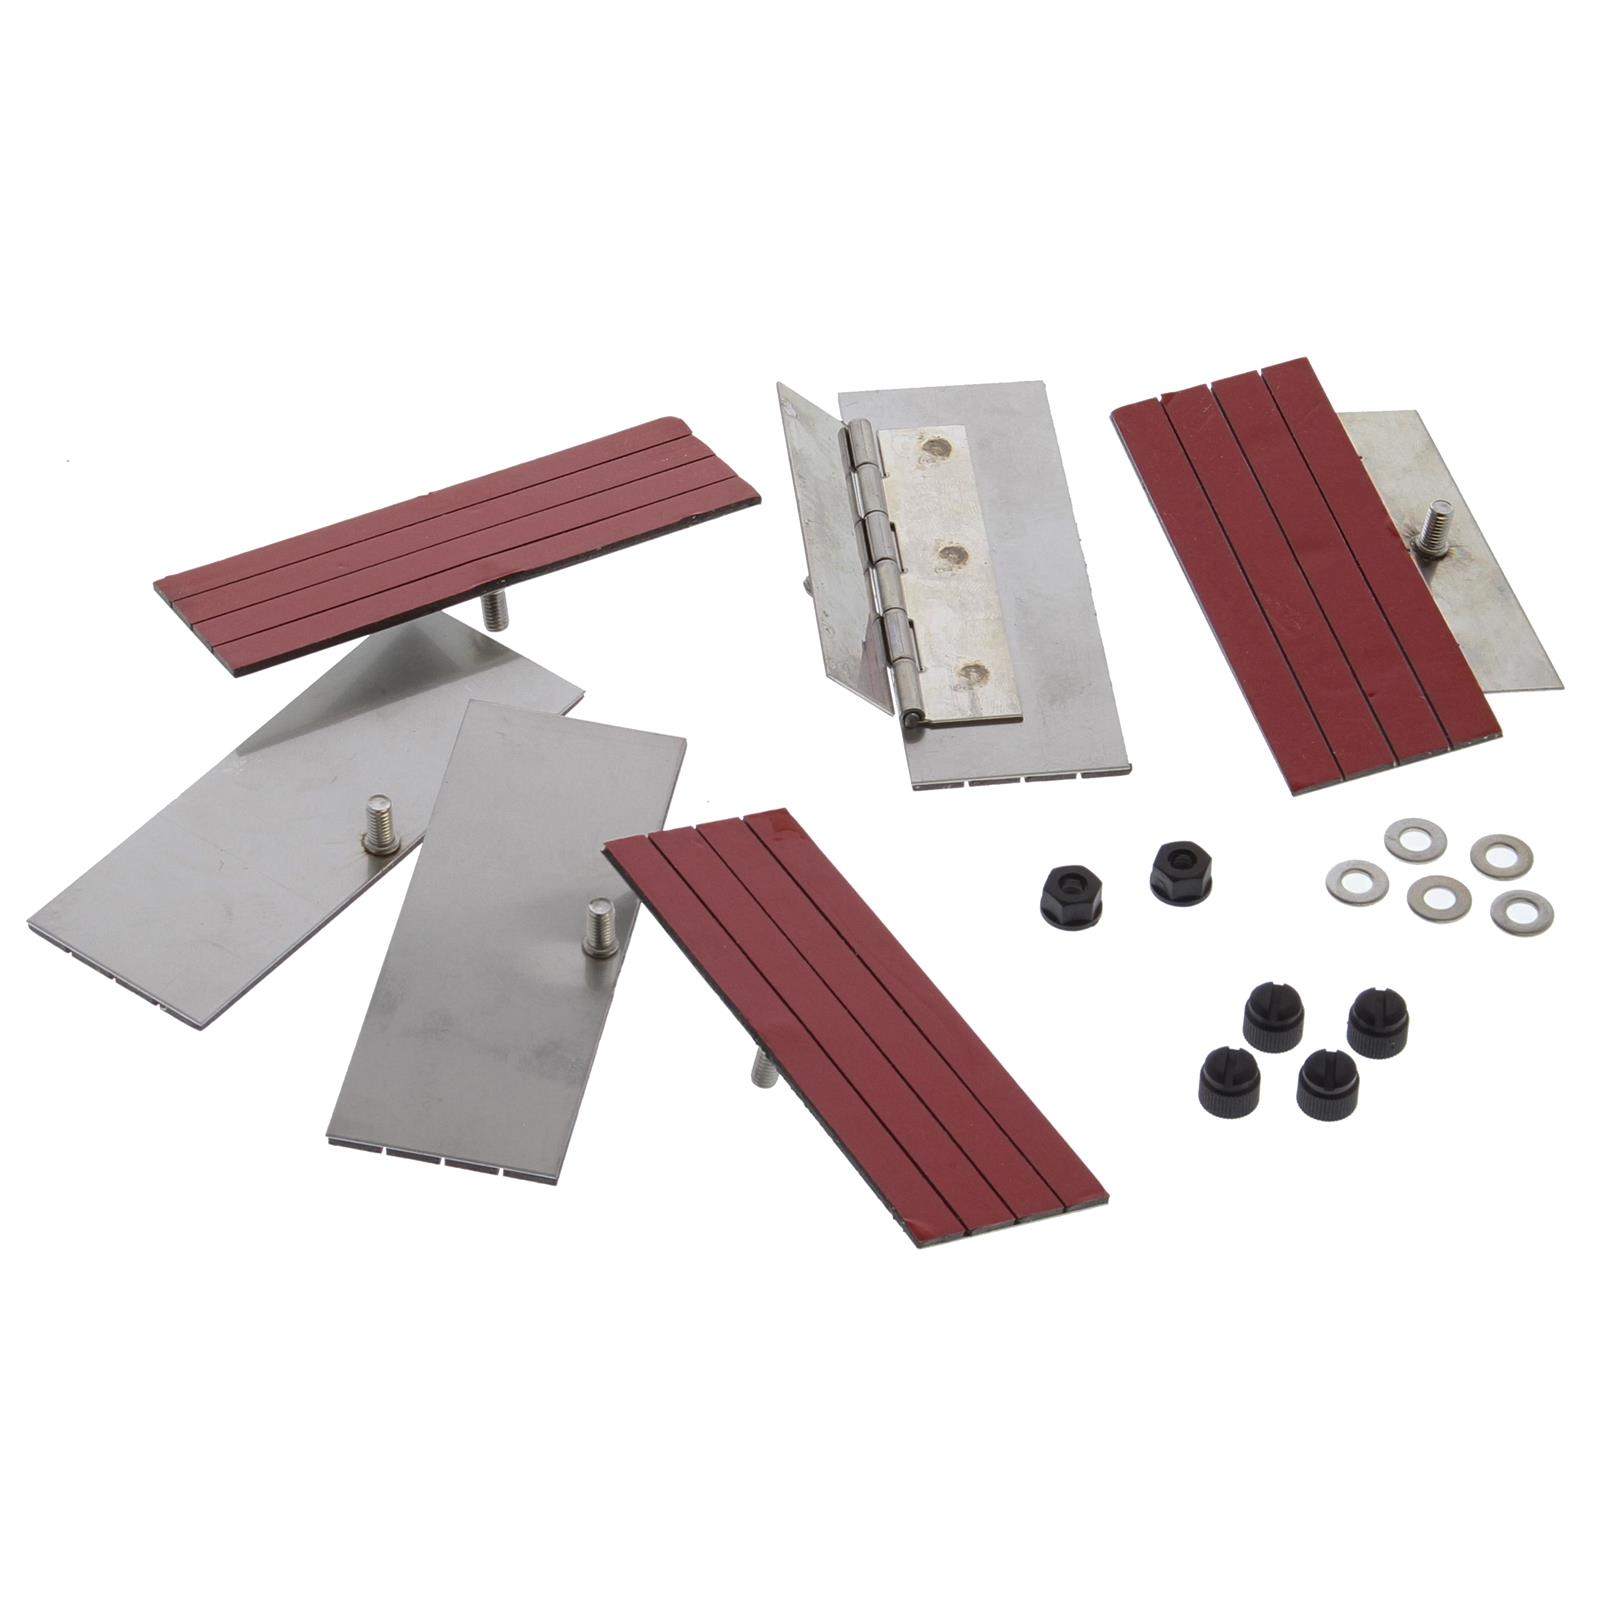 1 Set of Rear Window Louver Installation Kits Window Louver Replacement Hardware Double Side Tape Mounting Tools Kit Auto Parts Other Tools